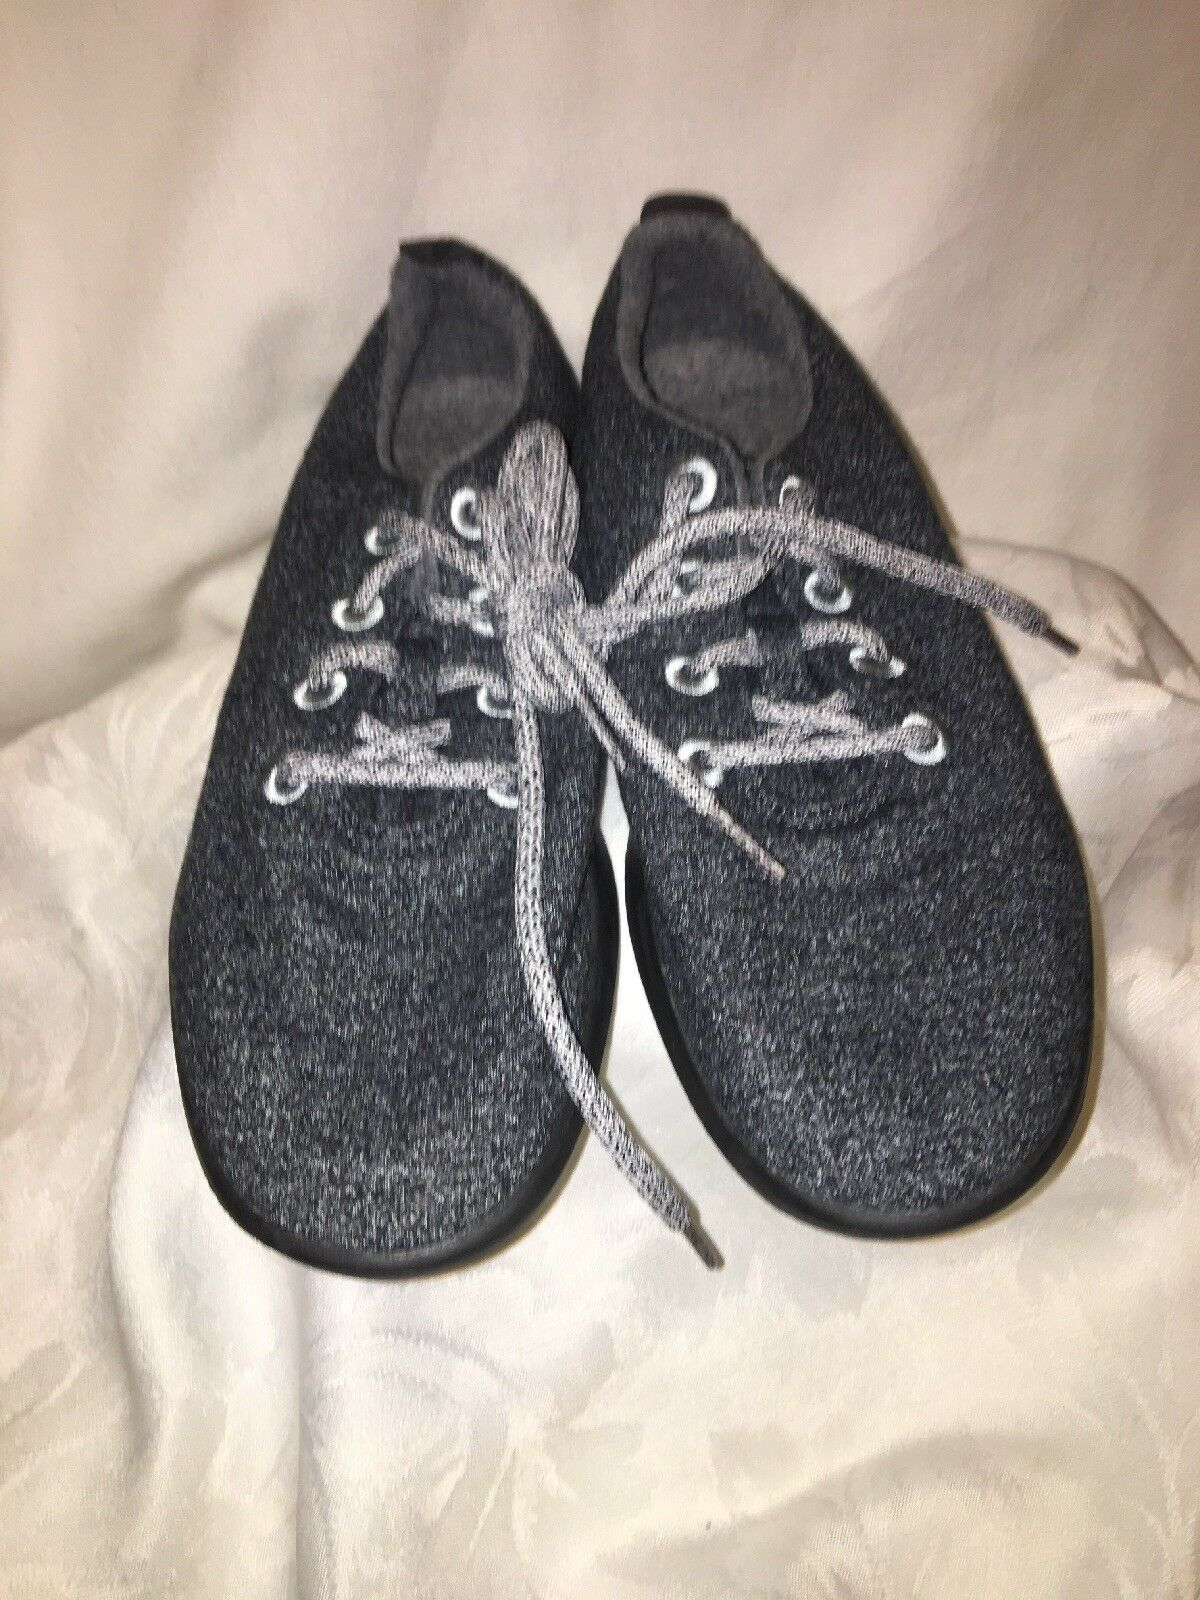 Allbirds Women's Wool Runners Size Size Size 10 color Dark Grey (with Black Soul) dad39d